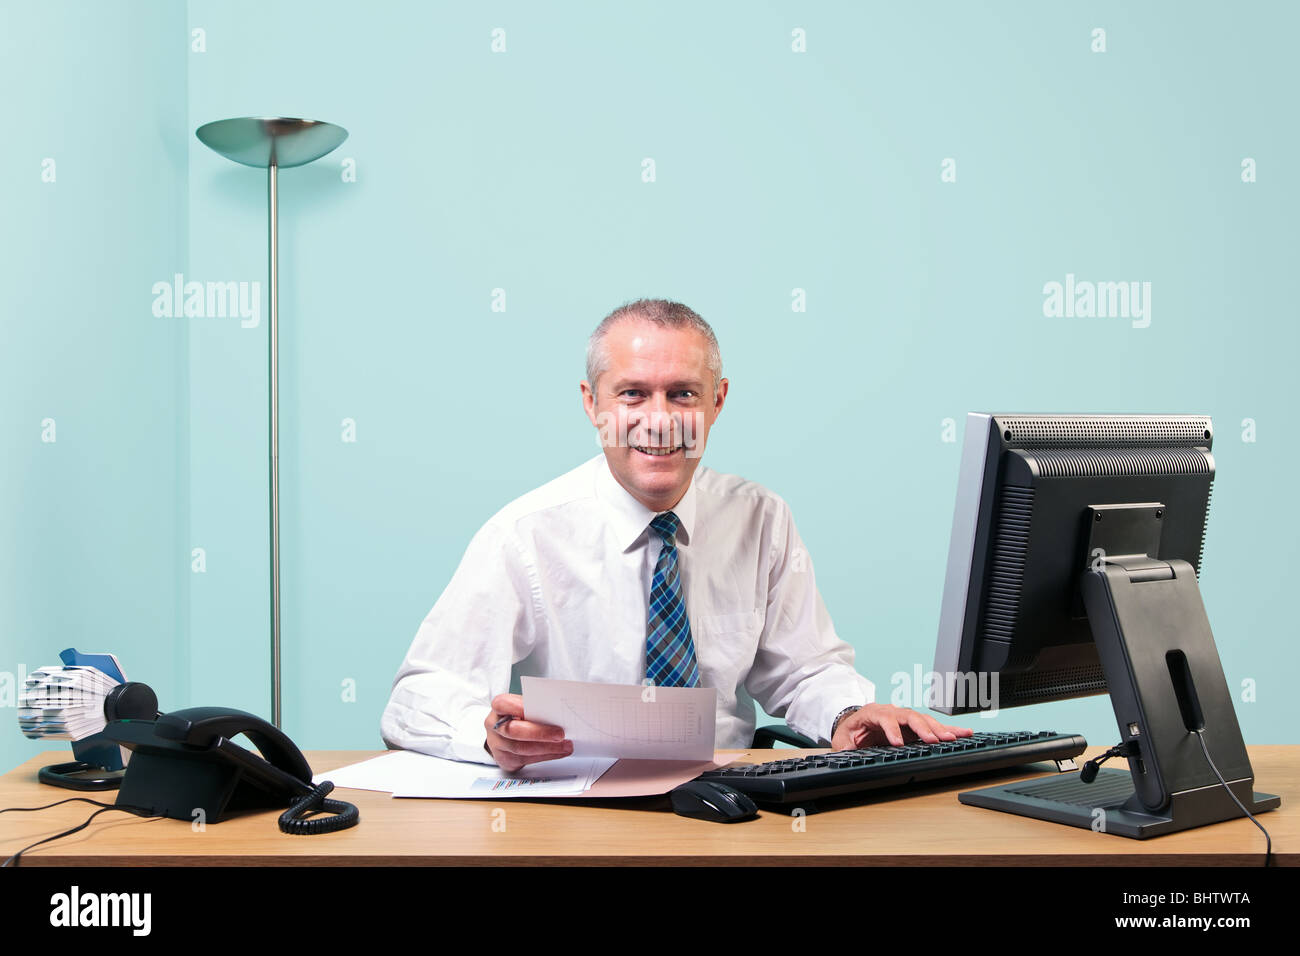 A mature businessman sat at his desk, looking towards camera and smiling. - Stock Image